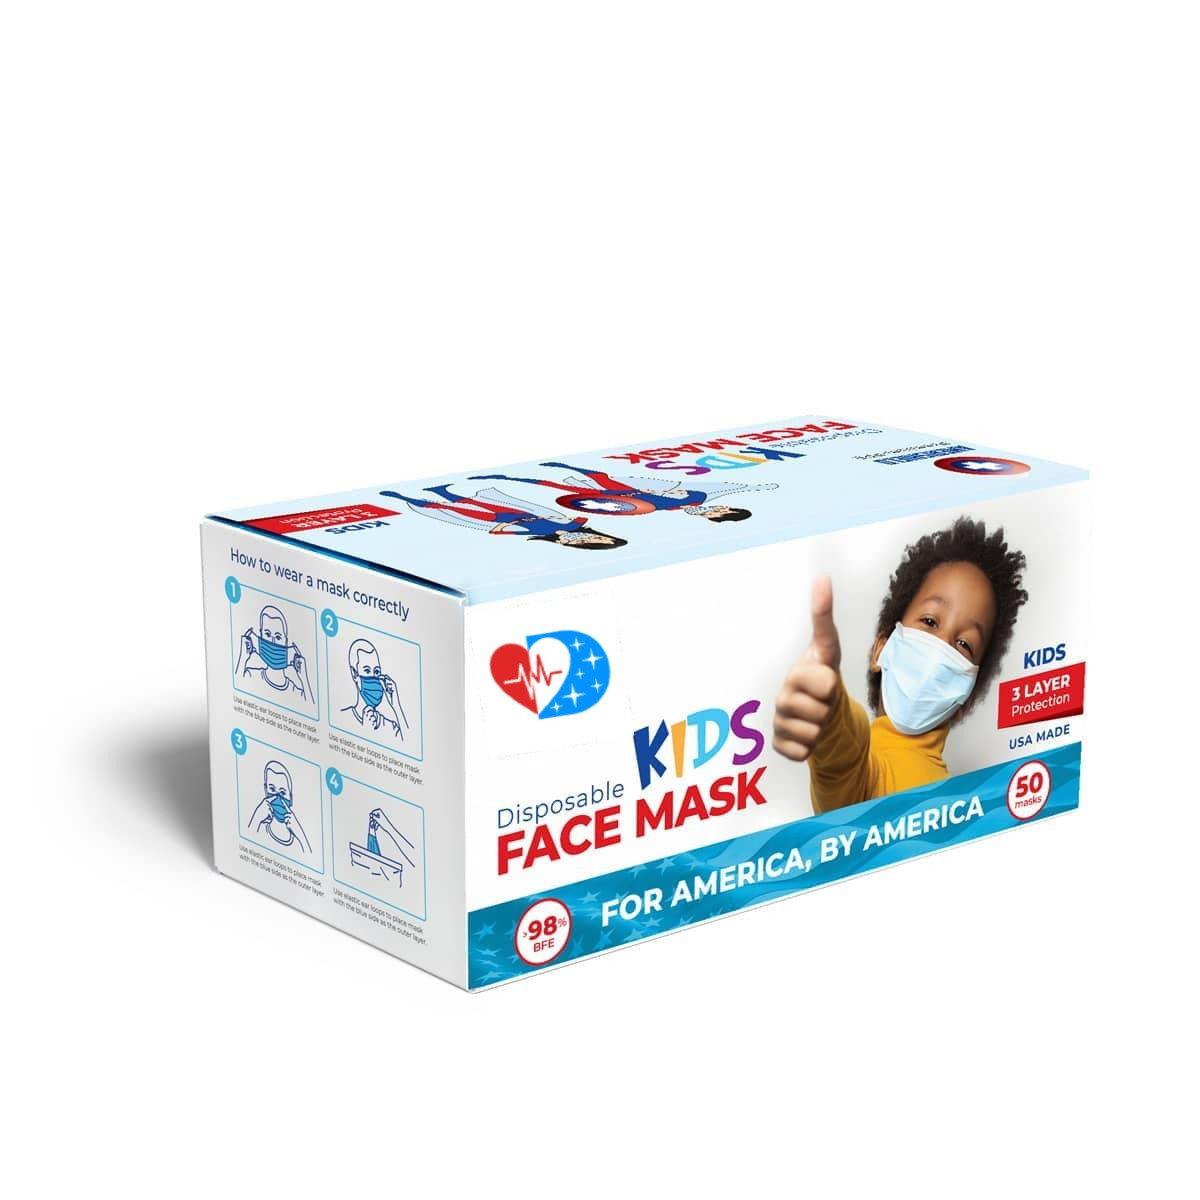 Kids American Made Face Masks (Box of 50) - Made in the USA 🇺🇸